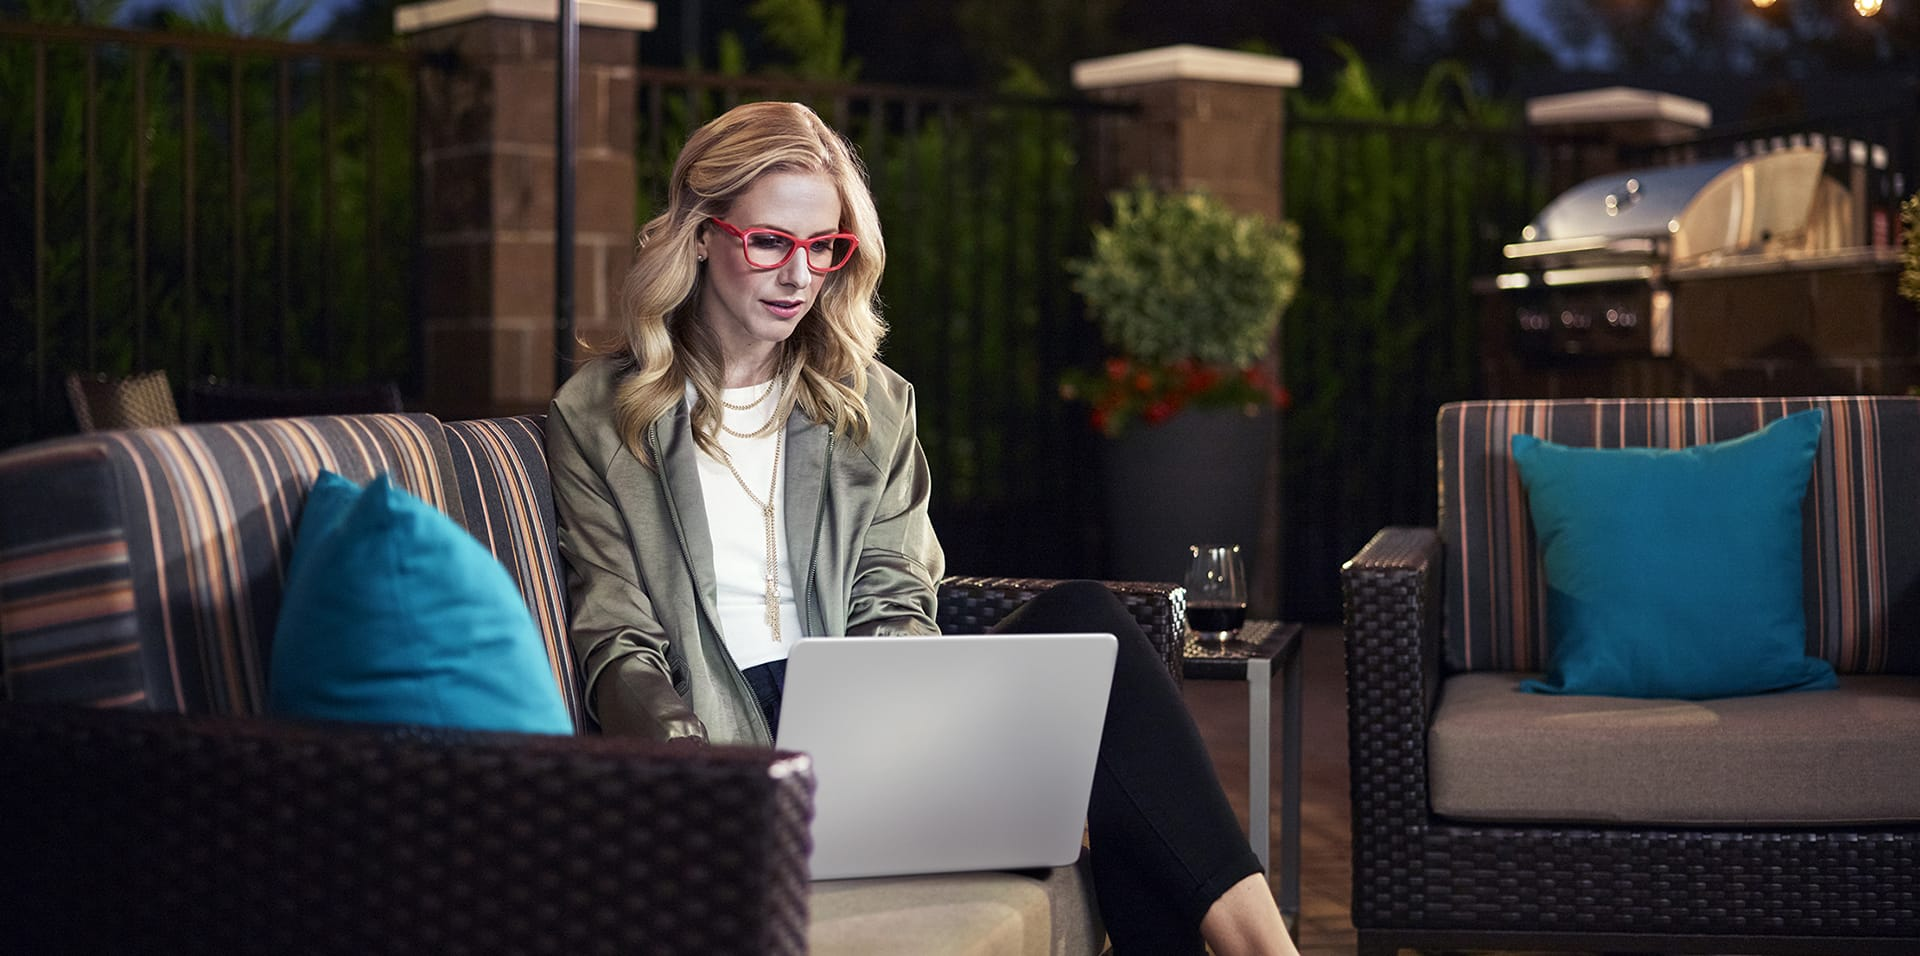 Woman sitting on patio with laptop